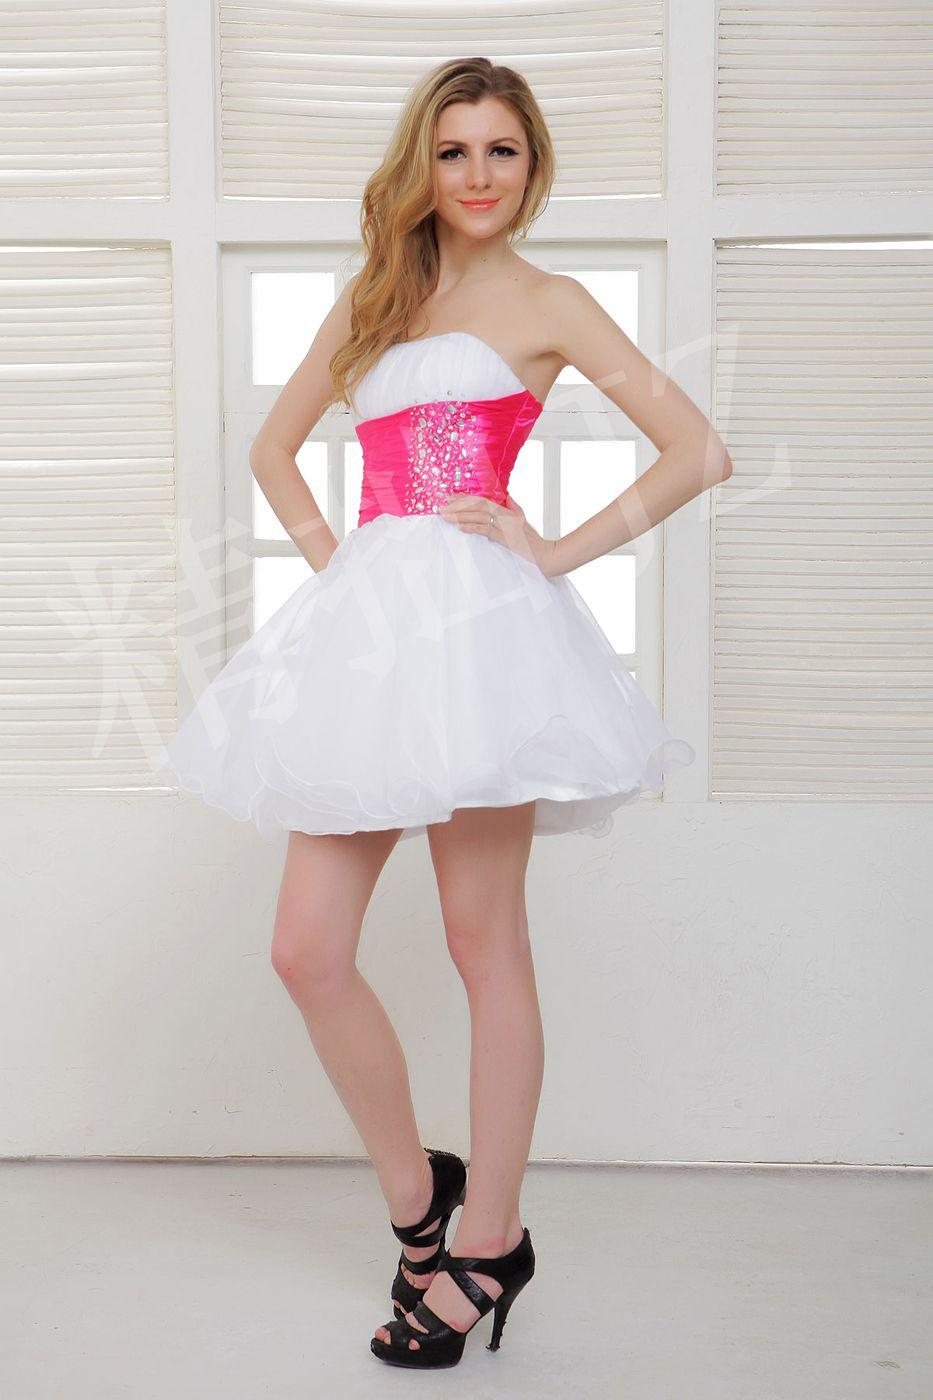 Beaded Homecoming Dress in Fuchsia And White Color Strapless Short ...